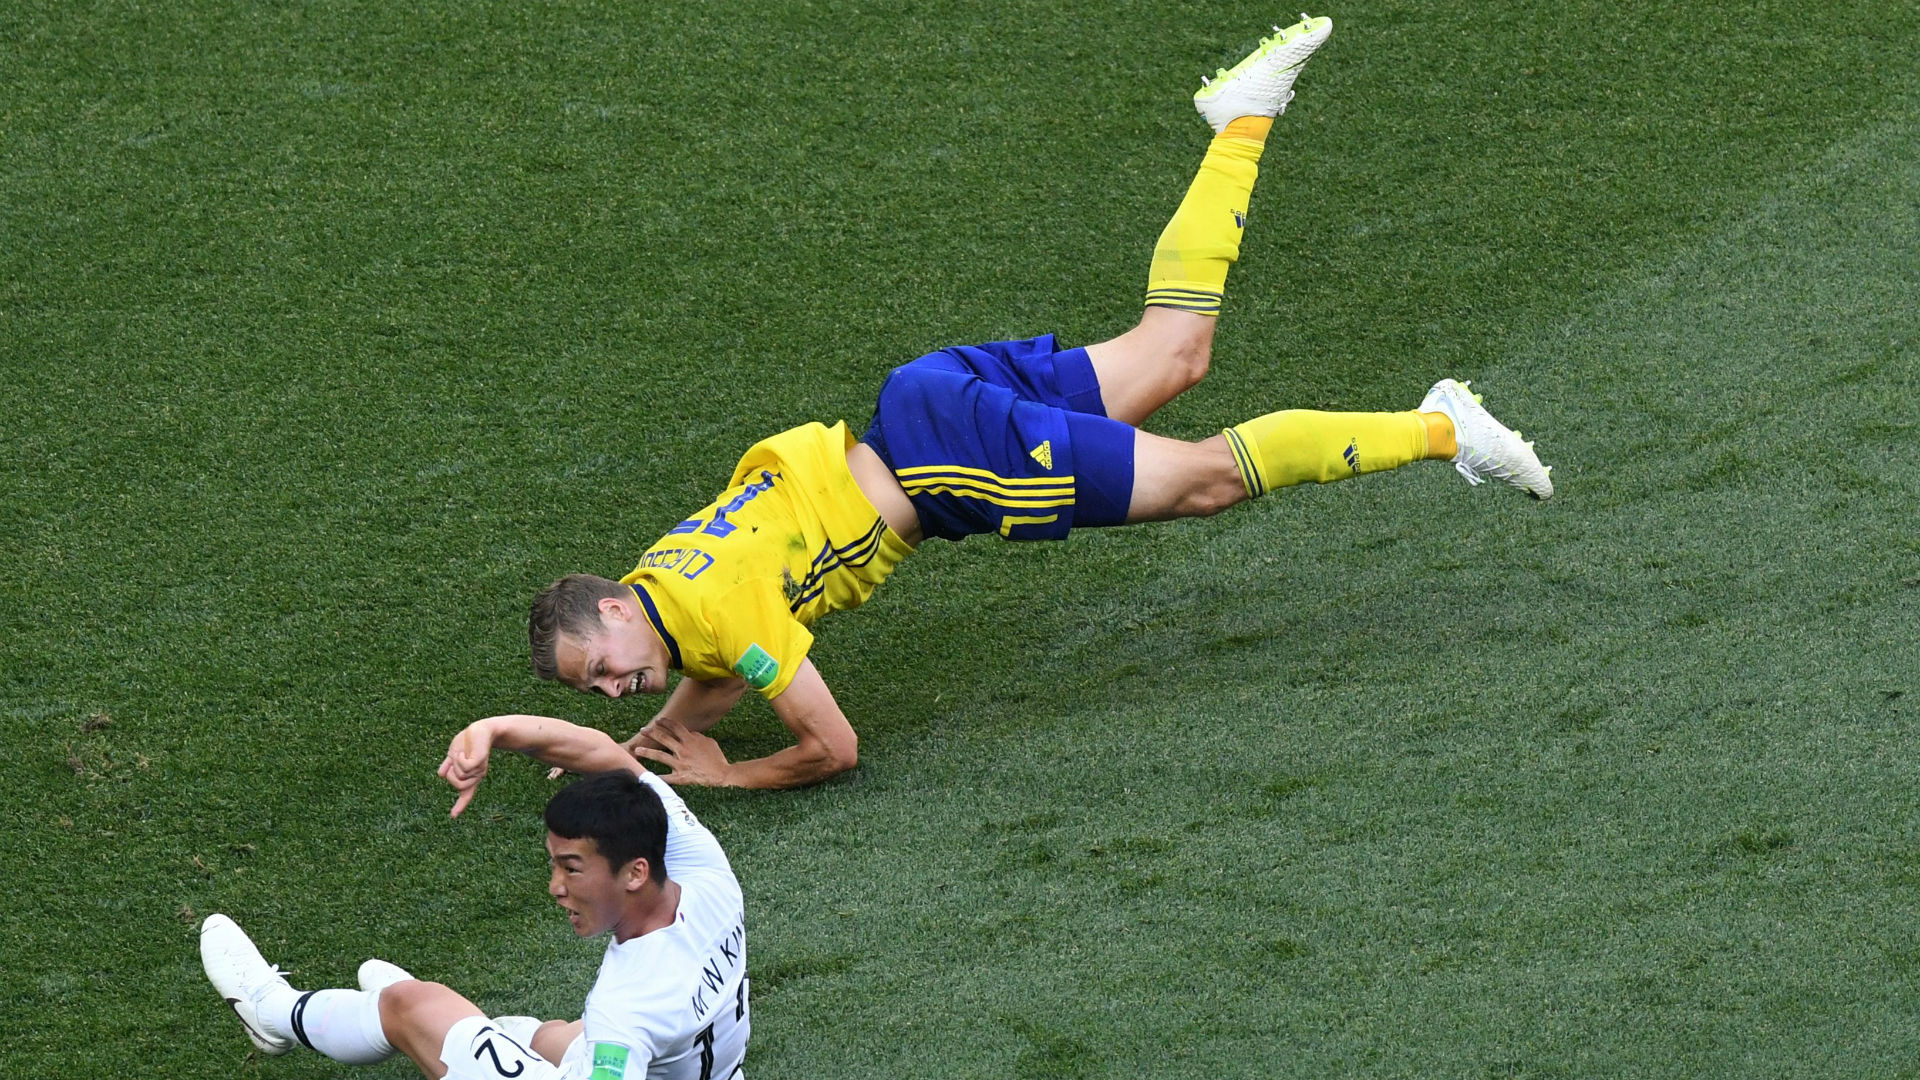 World Cup VAR review: Nigeria denied penalty, Neymar dive &all the major incidents at Russia 2018